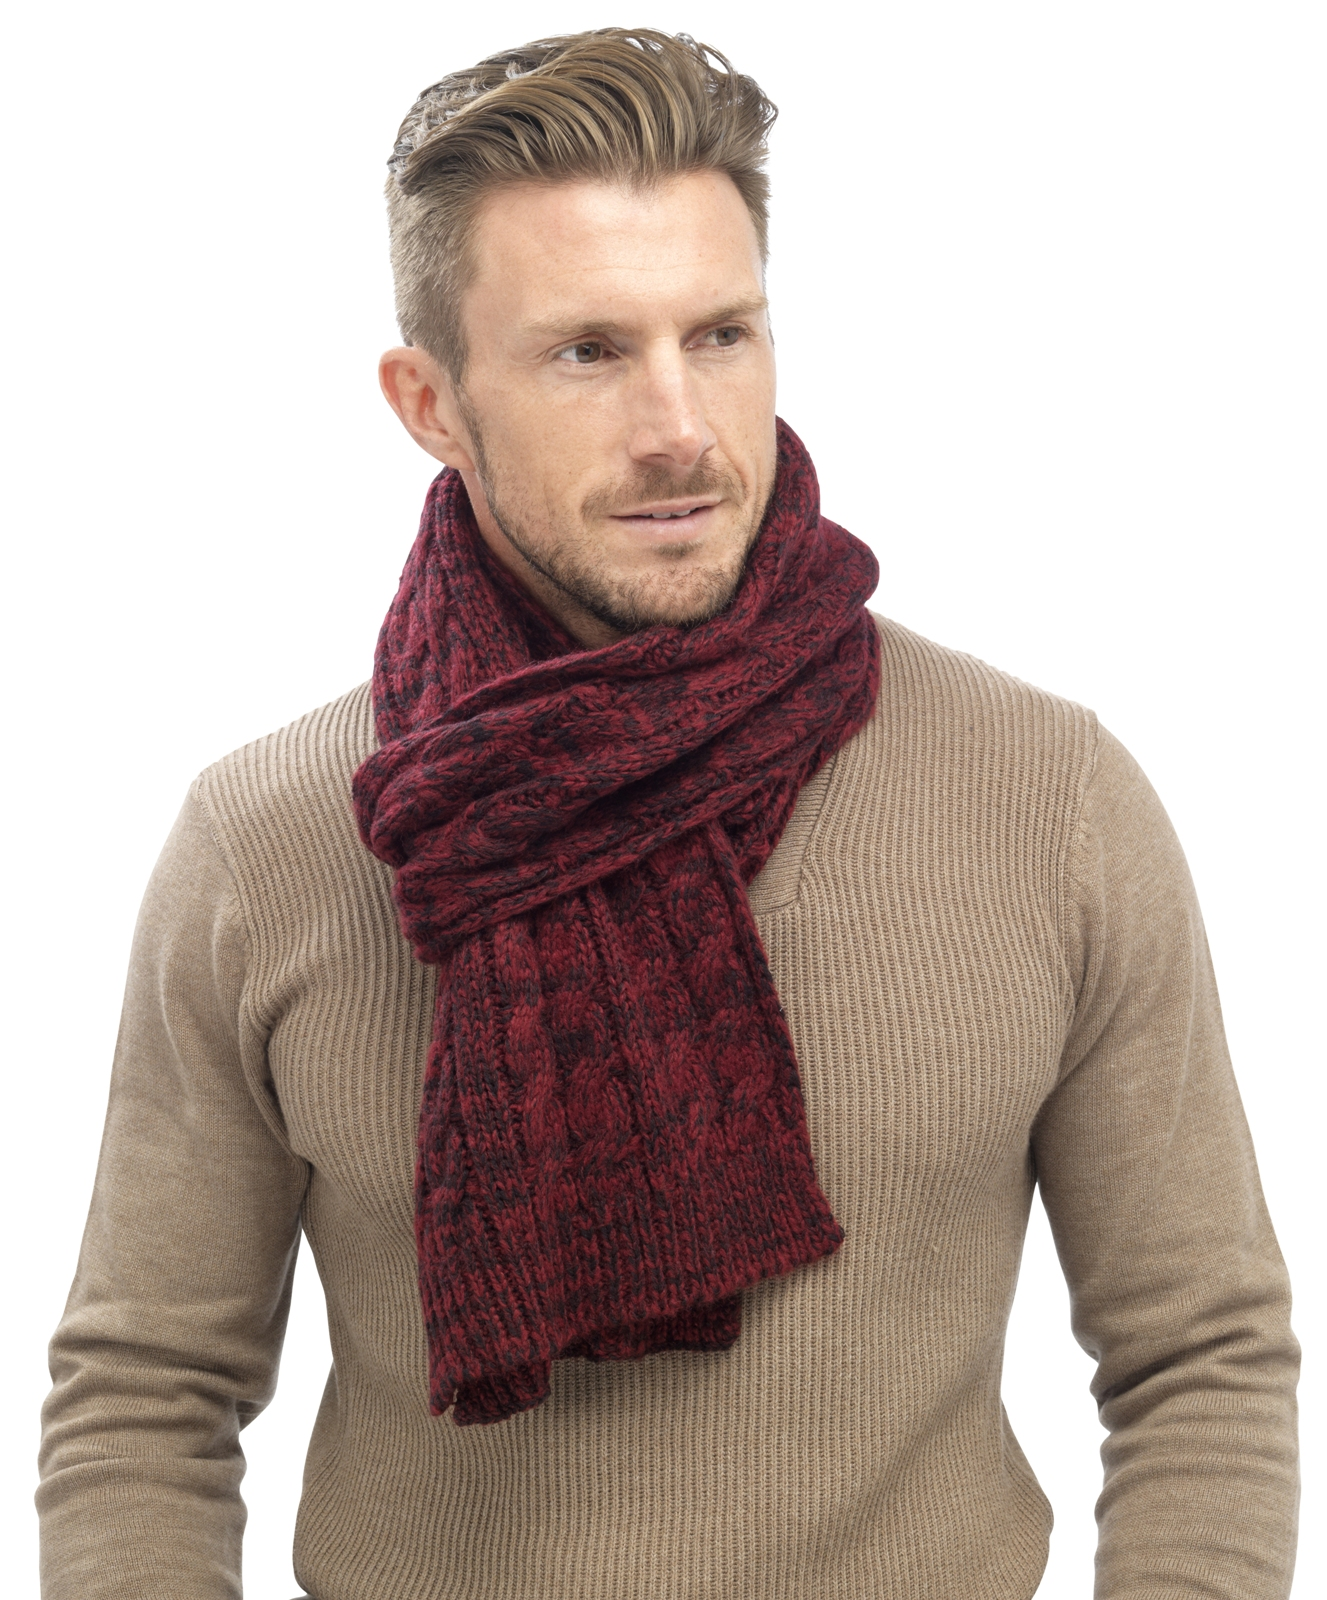 Shop for mens winter scarves online at Target. Free shipping on purchases over $35 and save 5% every day with your Target REDcard.